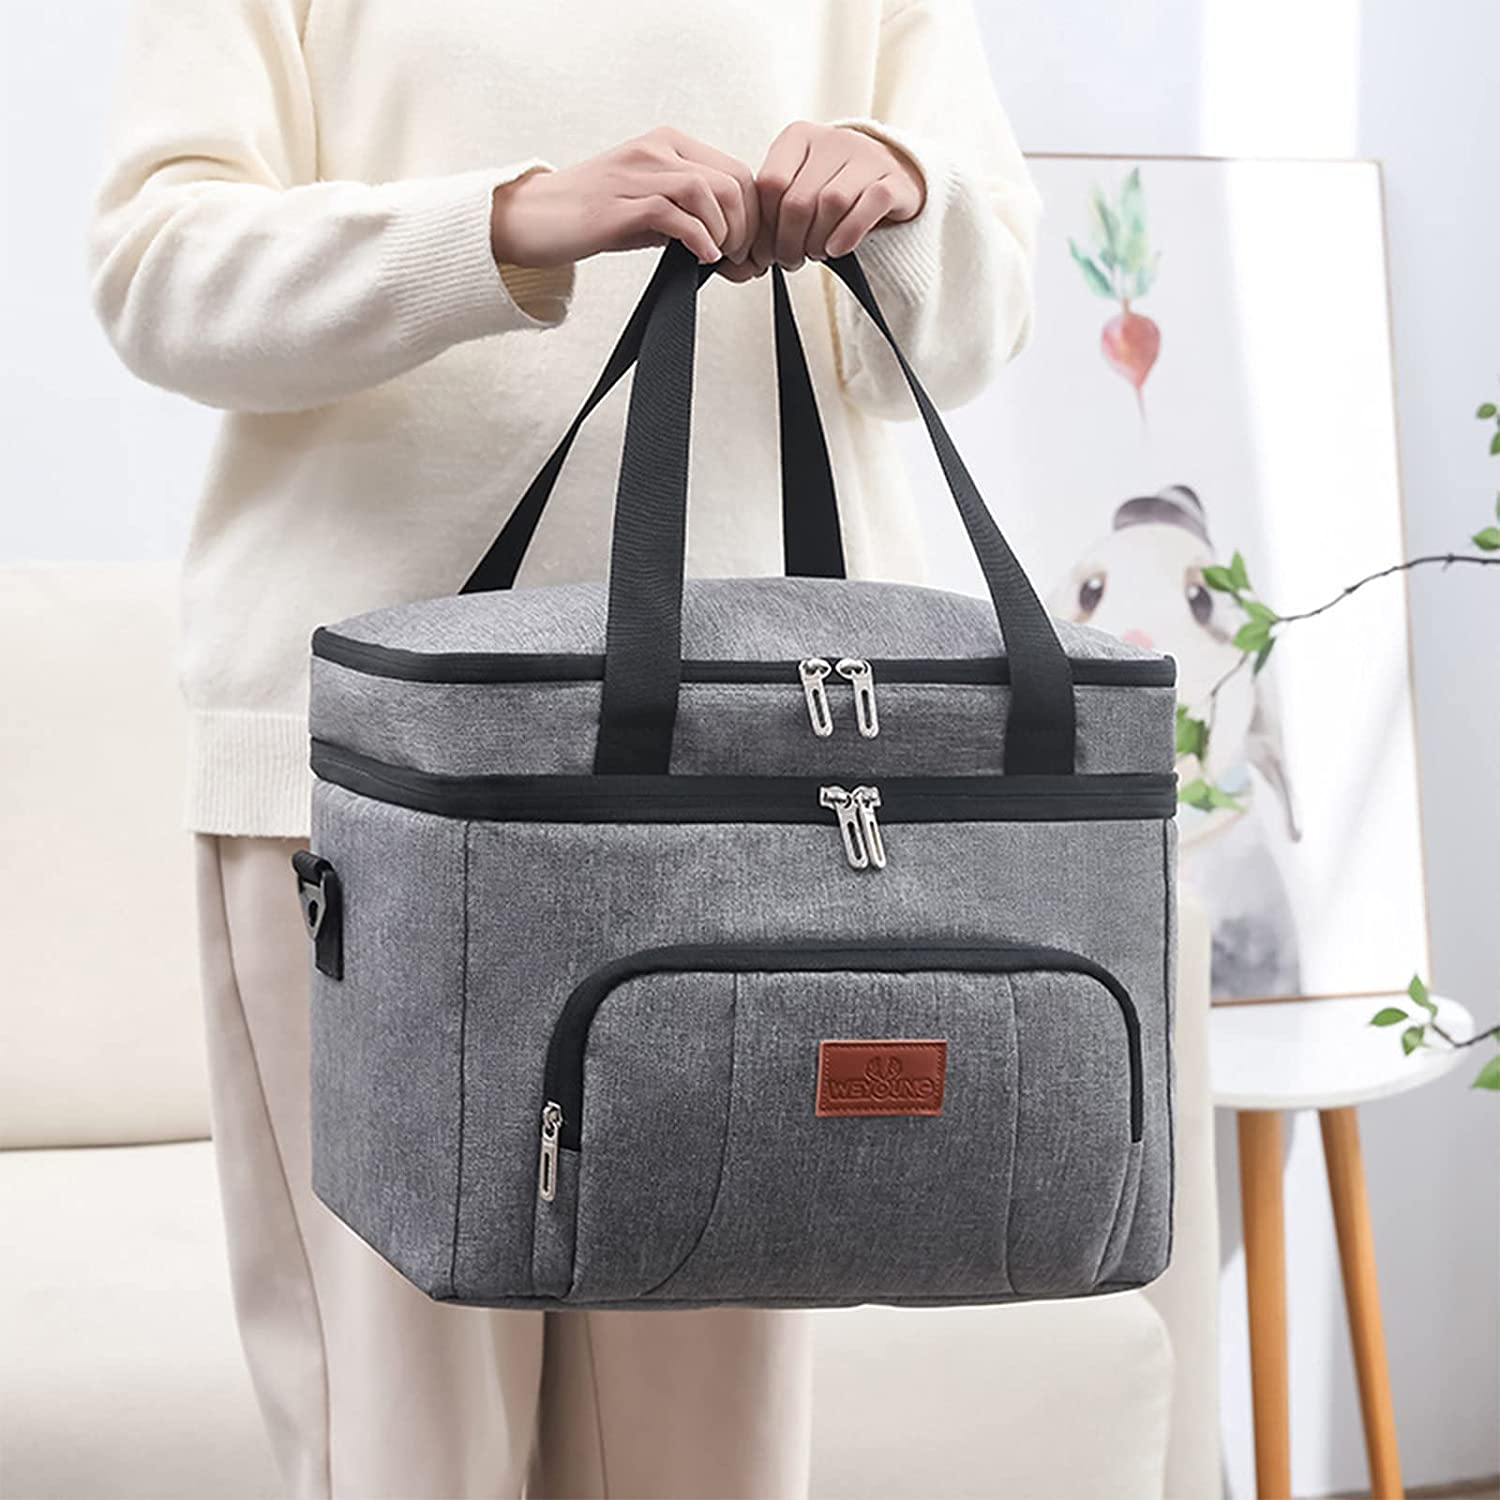 Insulated Lunch Bags for Women/Men Double Layer Cooler Insulated lunchbox Reusable Large Capacity with Space for More Meals and Snacks for School Office Picnic Hiking Beach